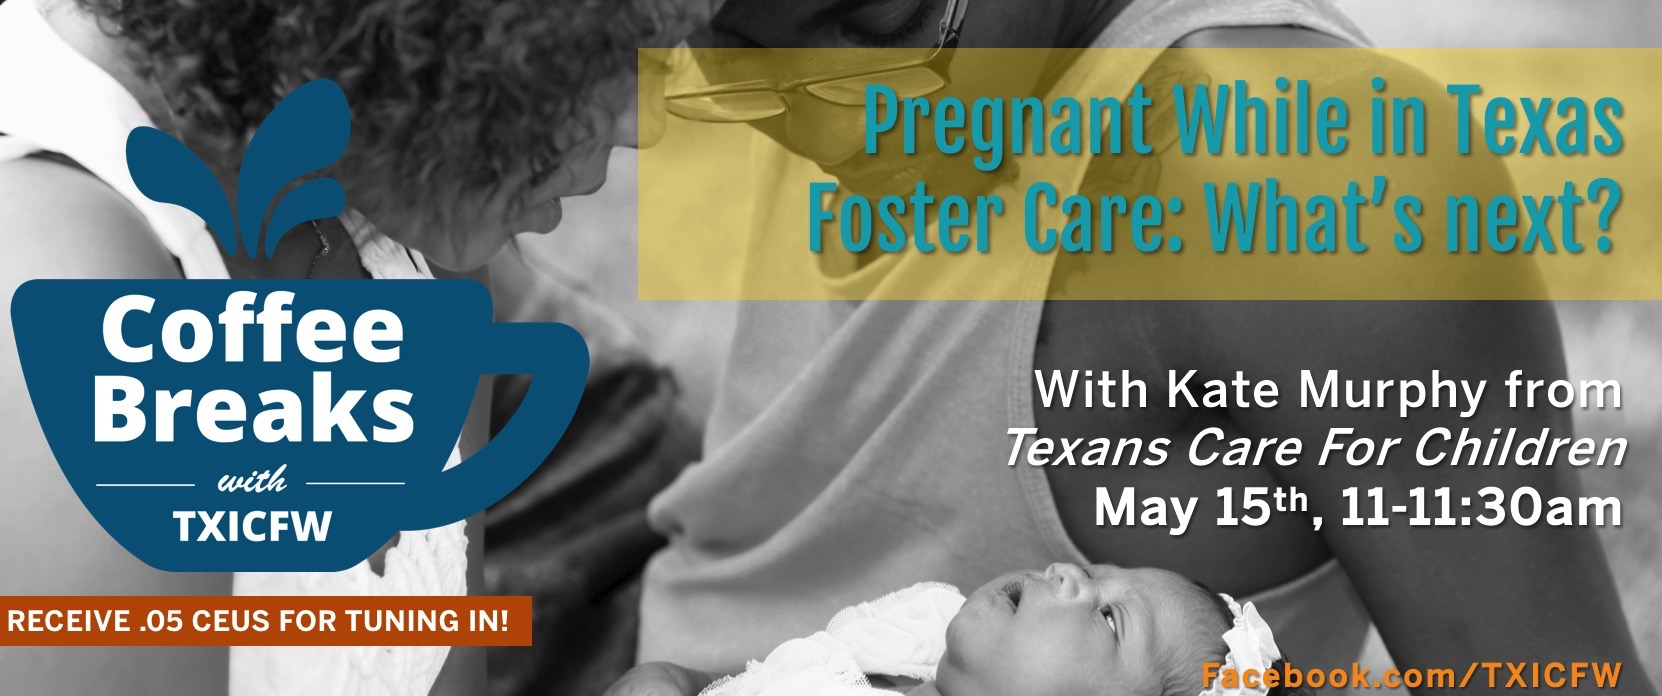 pregnant while in foster care